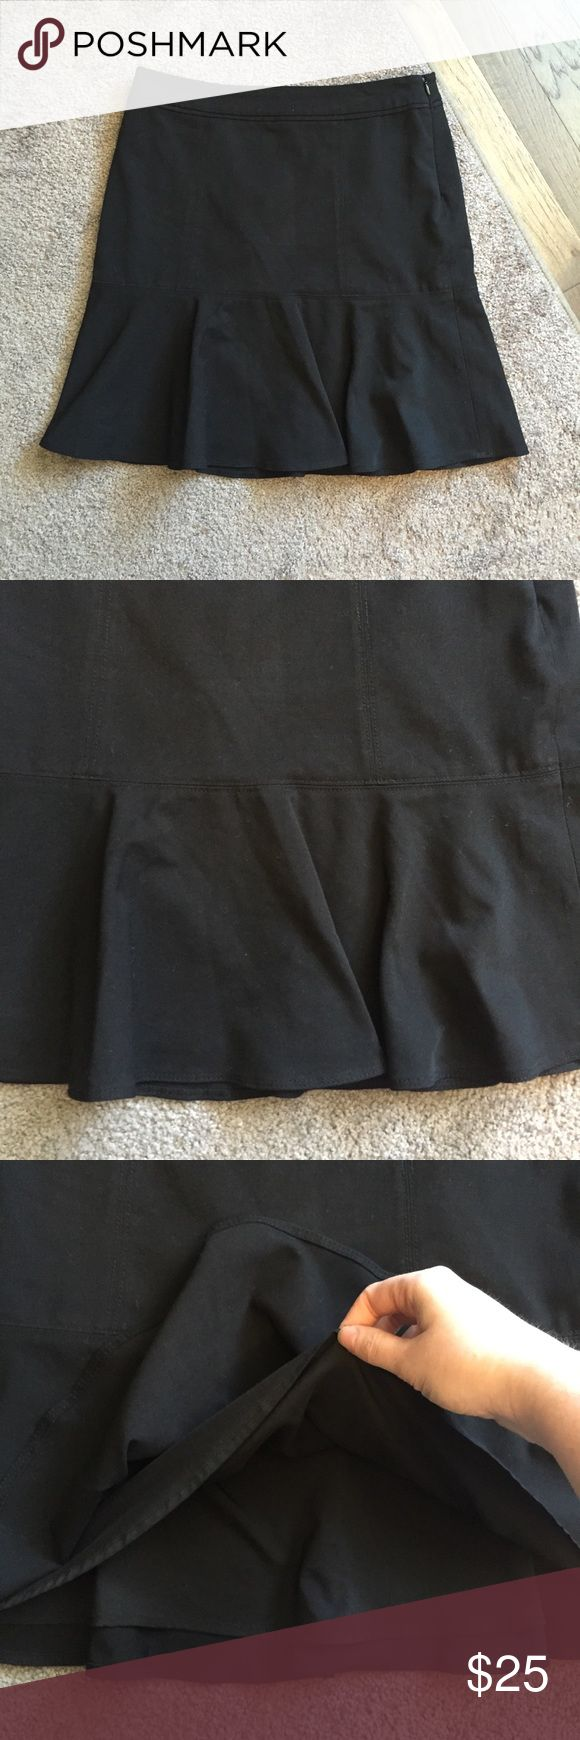 White House Black Market Black Peplum Skirt Sz 4 Excellent condition! Thank you for looking! White House Black Market Skirts A-Line or Full